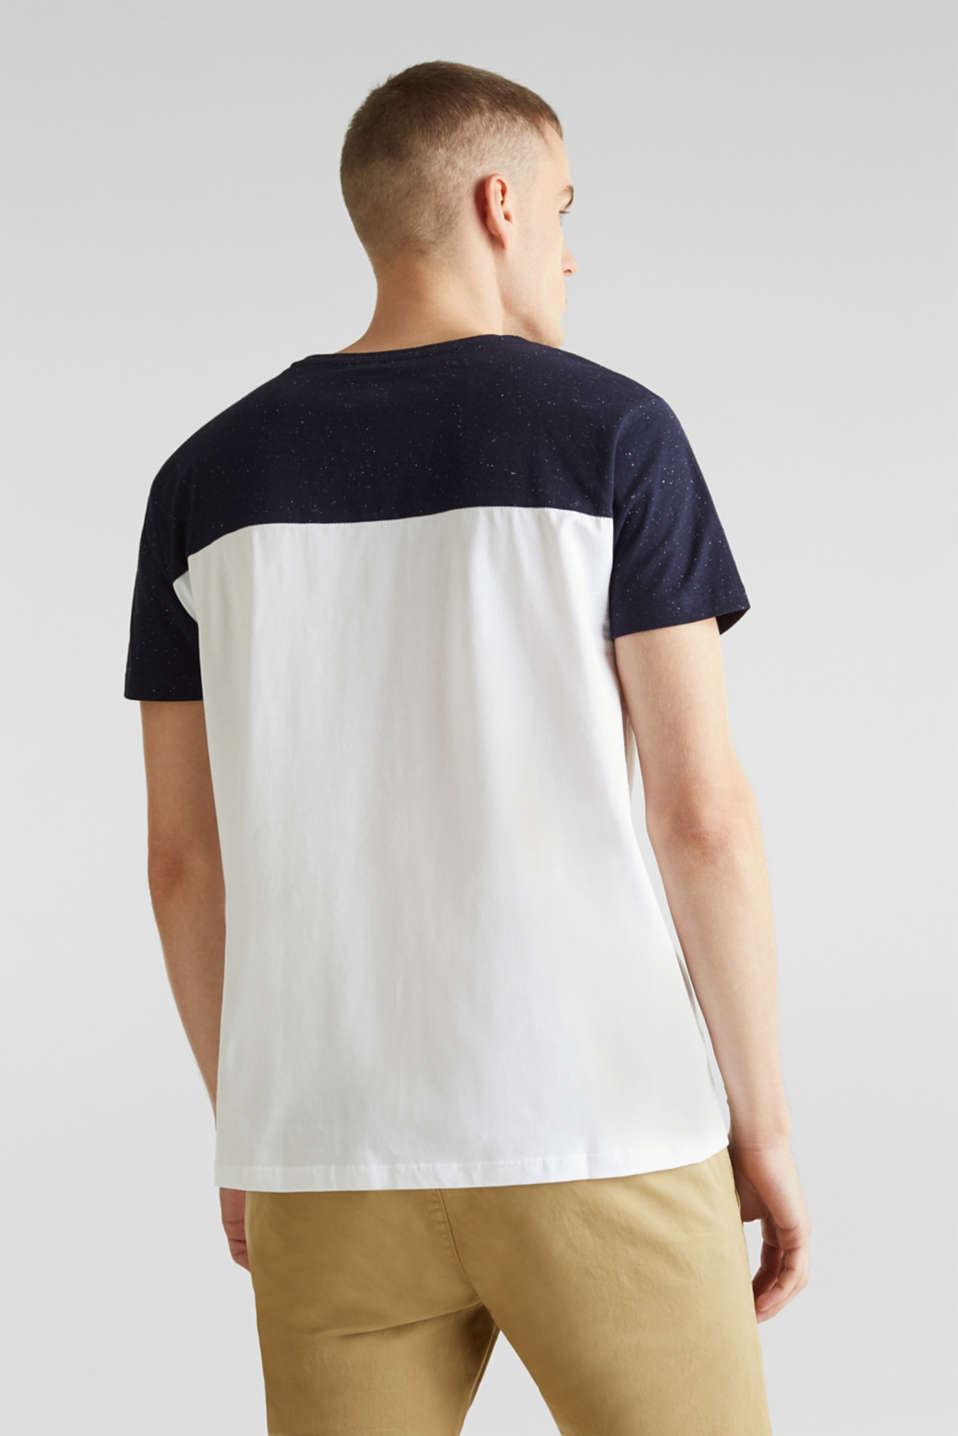 Jersey T-shirt in 100% cotton, WHITE 2, detail image number 2